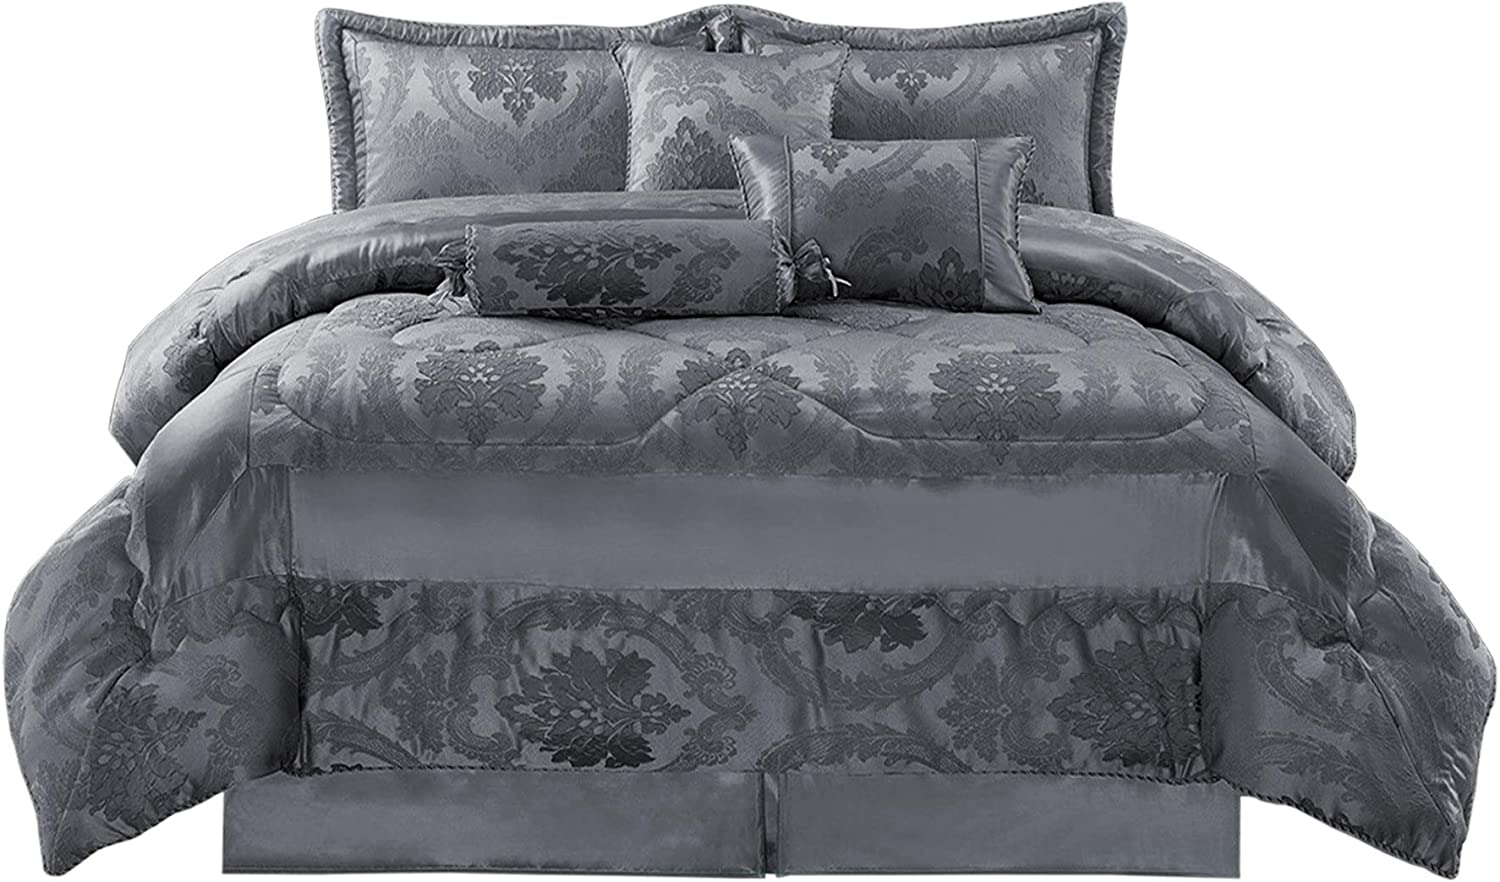 Jacquard Bedding Set for Bedroom Accessories MOONLIGHT20015 Bedspread 7 PC Quilt Comforter Bed Throw Bedspreads and Throws King 255x255cm Betty Dark Grey